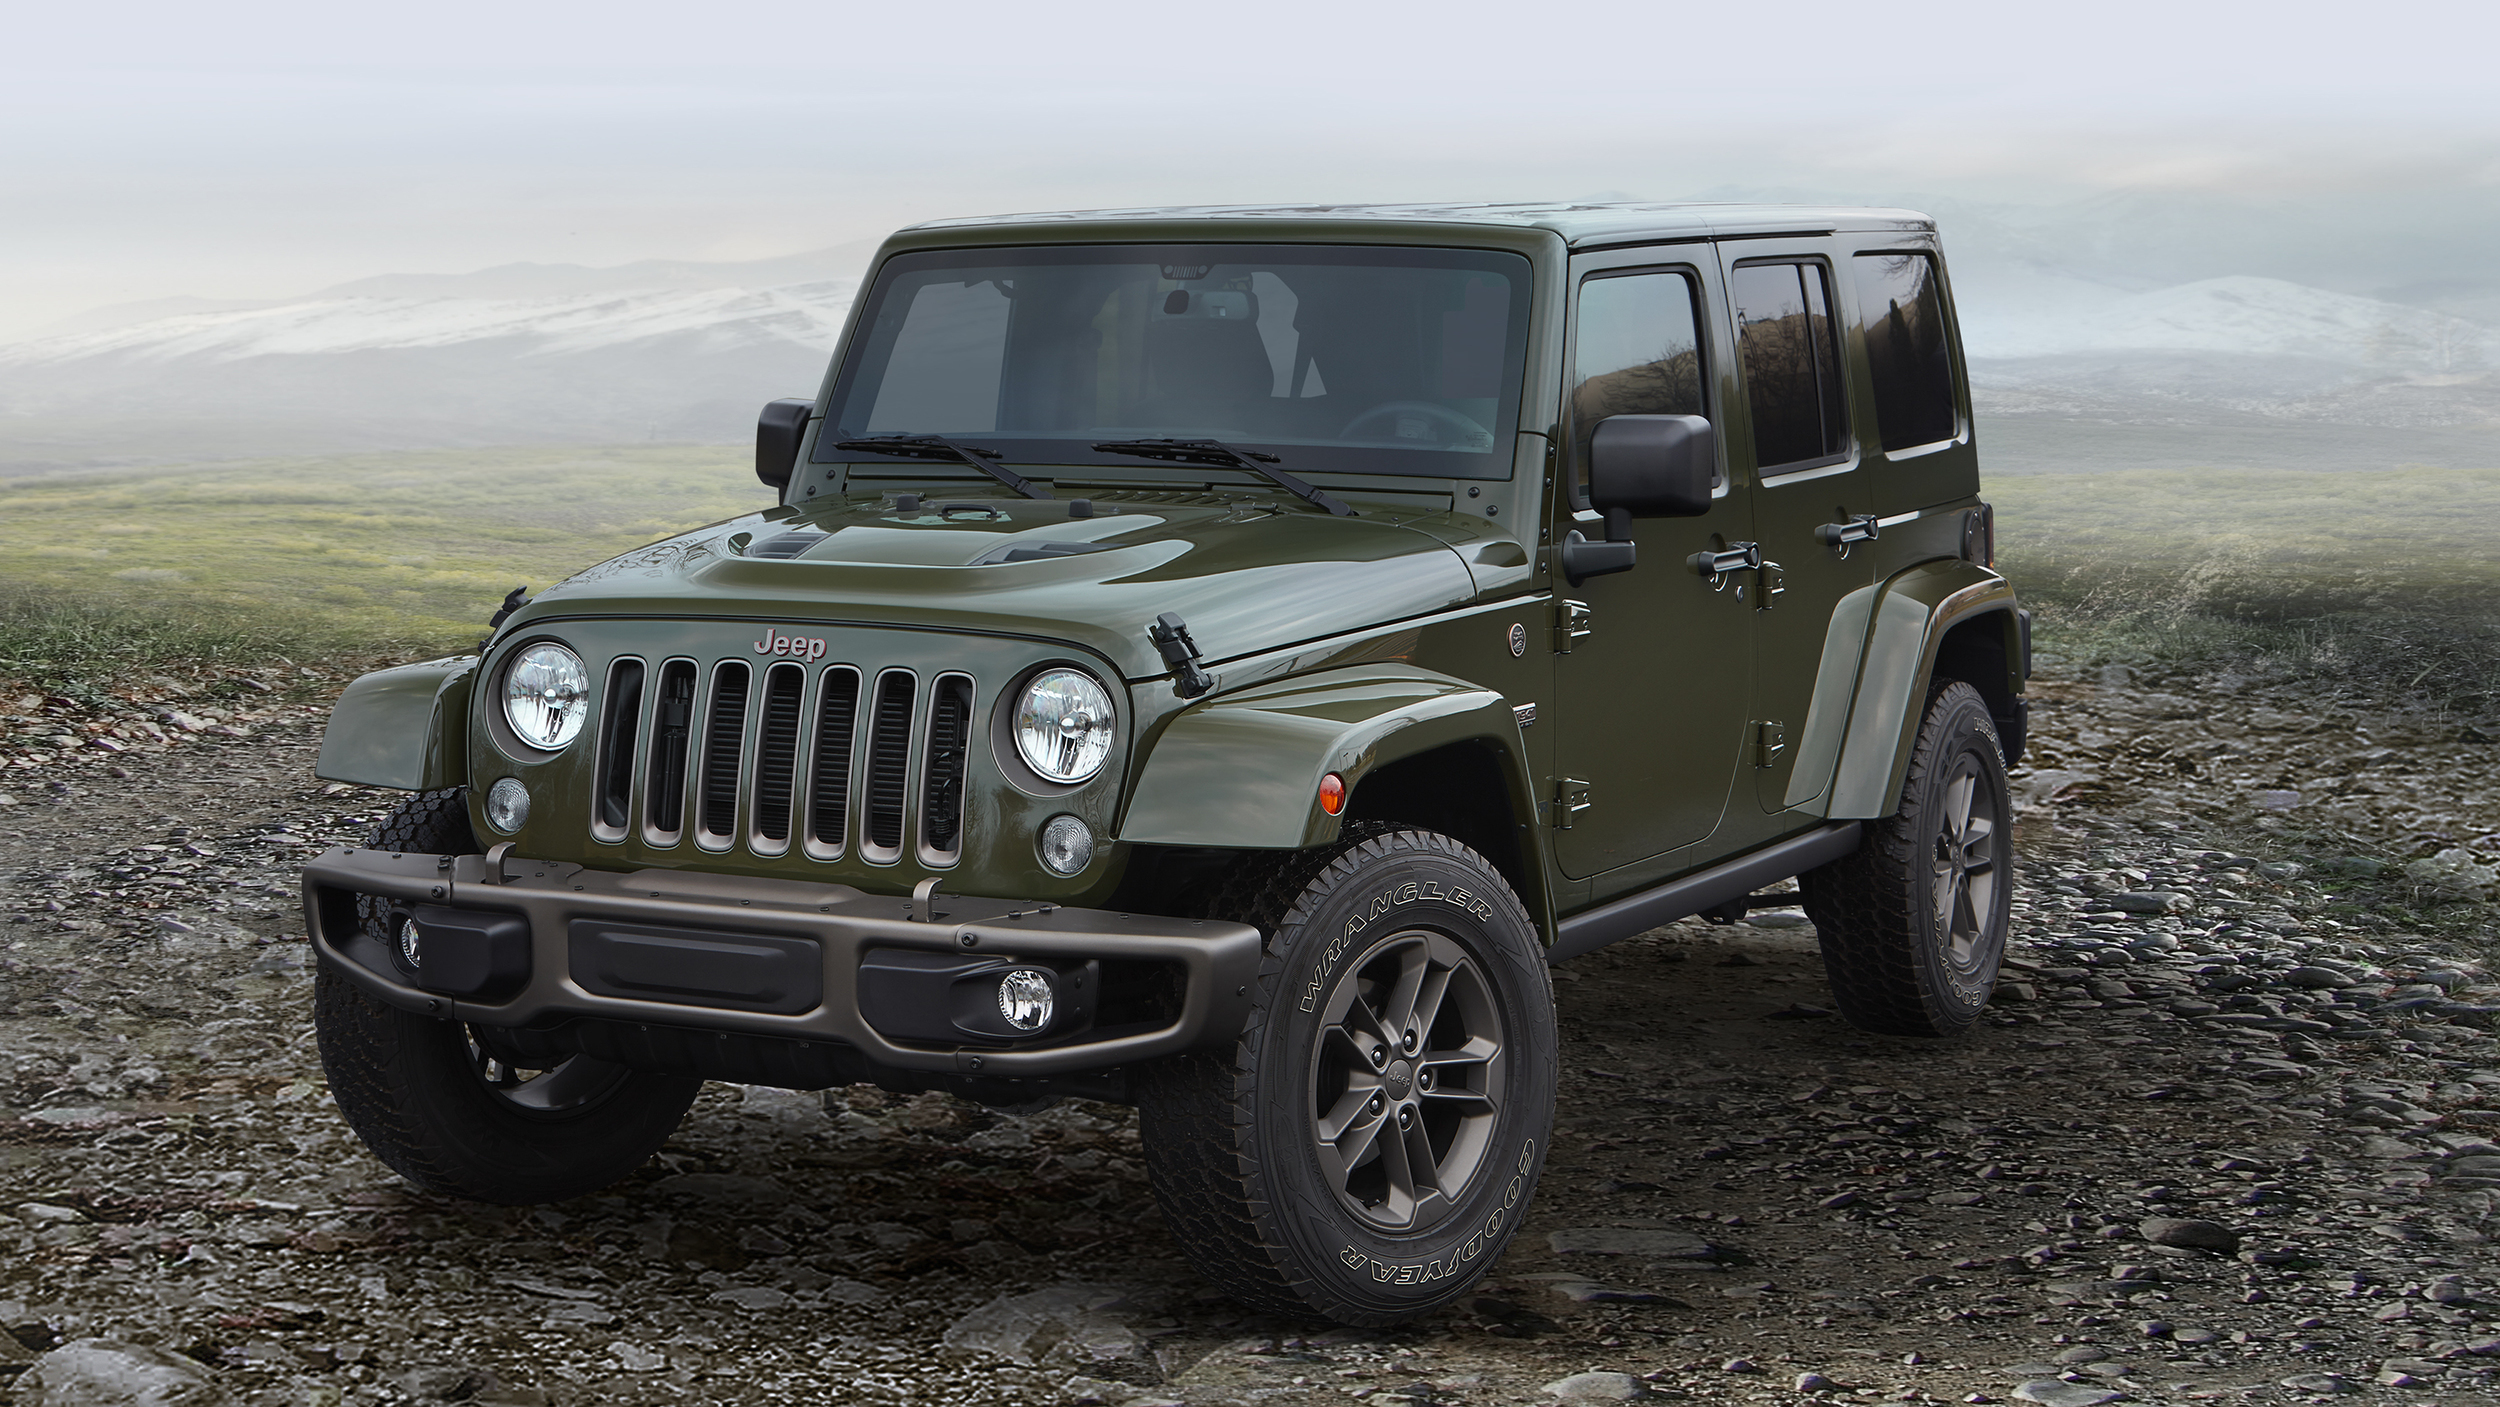 2017 Jeep Wrangler - Road and Trail Capable SUV